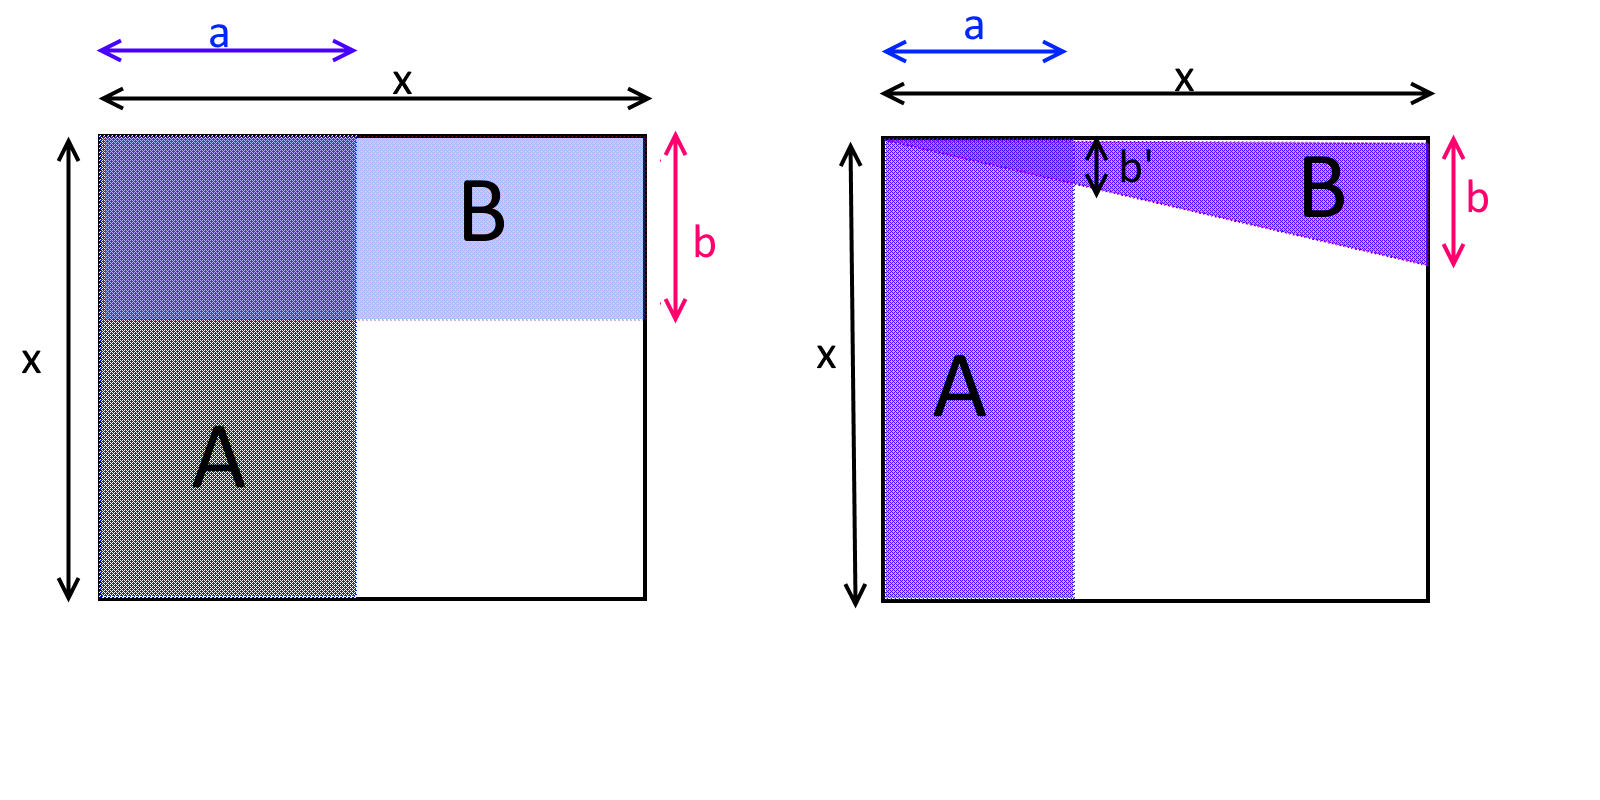 17.3: Two events A and B are independent if \Pr[A \cap B]=\Pr[A]\cdot \Pr[B]. In the two figures above, the empty x\times x square is the sample space, and A and B are two events in this sample space. In the left figure, A and B are independent, while in the right figure they are negatively correlated, since B is less likely to occur if we condition on A (and vice versa). Mathematically, one can see this by noticing that in the left figure the areas of A and B respectively are a\cdot x and b\cdot x, and so their probabilities are \tfrac{a\cdot x}{x^2}=\tfrac{a}{x} and \tfrac{b\cdot x}{x^2}=\tfrac{b}{x} respectively, while the area of A \cap B is a\cdot b which corresponds to the probability \tfrac{a\cdot b}{x^2}. In the right figure, the area of the triangle B is \tfrac{b\cdot x}{2} which corresponds to a probability of \tfrac{b}{2x}, but the area of A \cap B is \tfrac{b' \cdot a}{2} for some b'<b. This means that the probability of A \cap B is \tfrac{b'\cdot a}{2x^2} < \tfrac{b}{2x} \cdot \tfrac{a}{x}, or in other words \Pr[A \cap B ] < \Pr[A] \cdot \Pr[B].